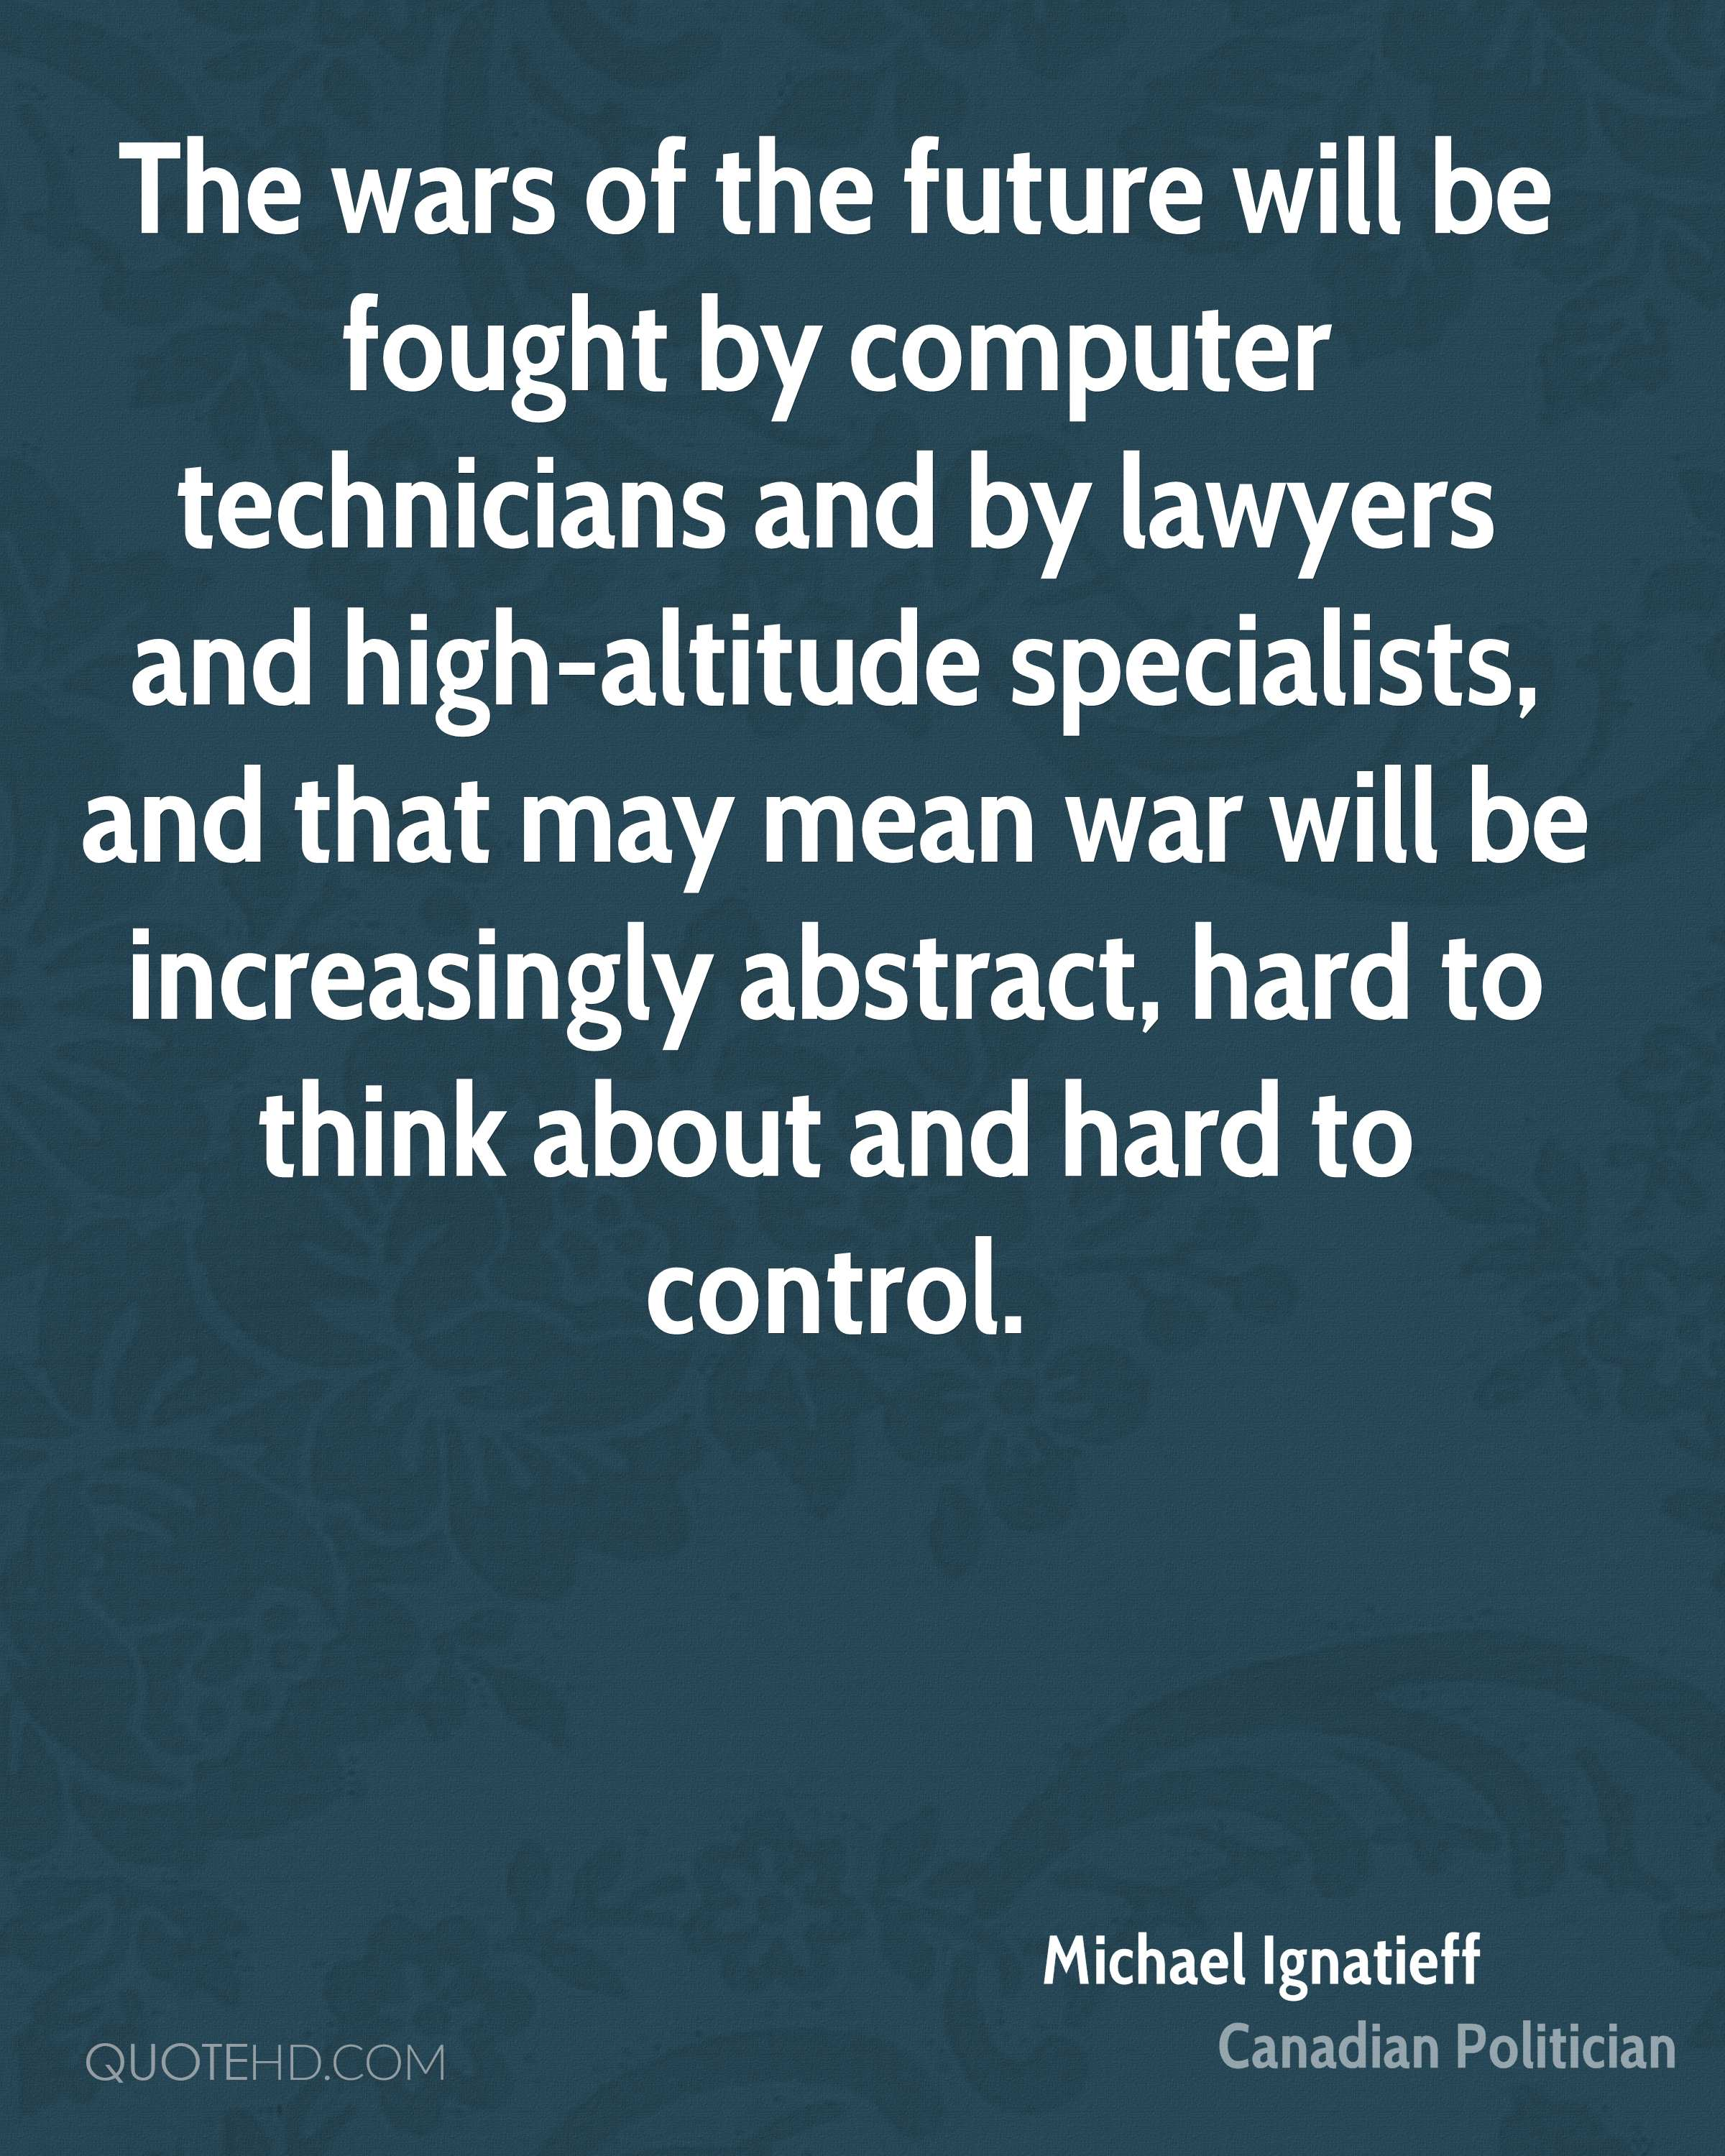 The wars of the future will be fought by computer technicians and by lawyers and high-altitude specialists, and that may mean war will be increasingly abstract, hard to think about and hard to control.